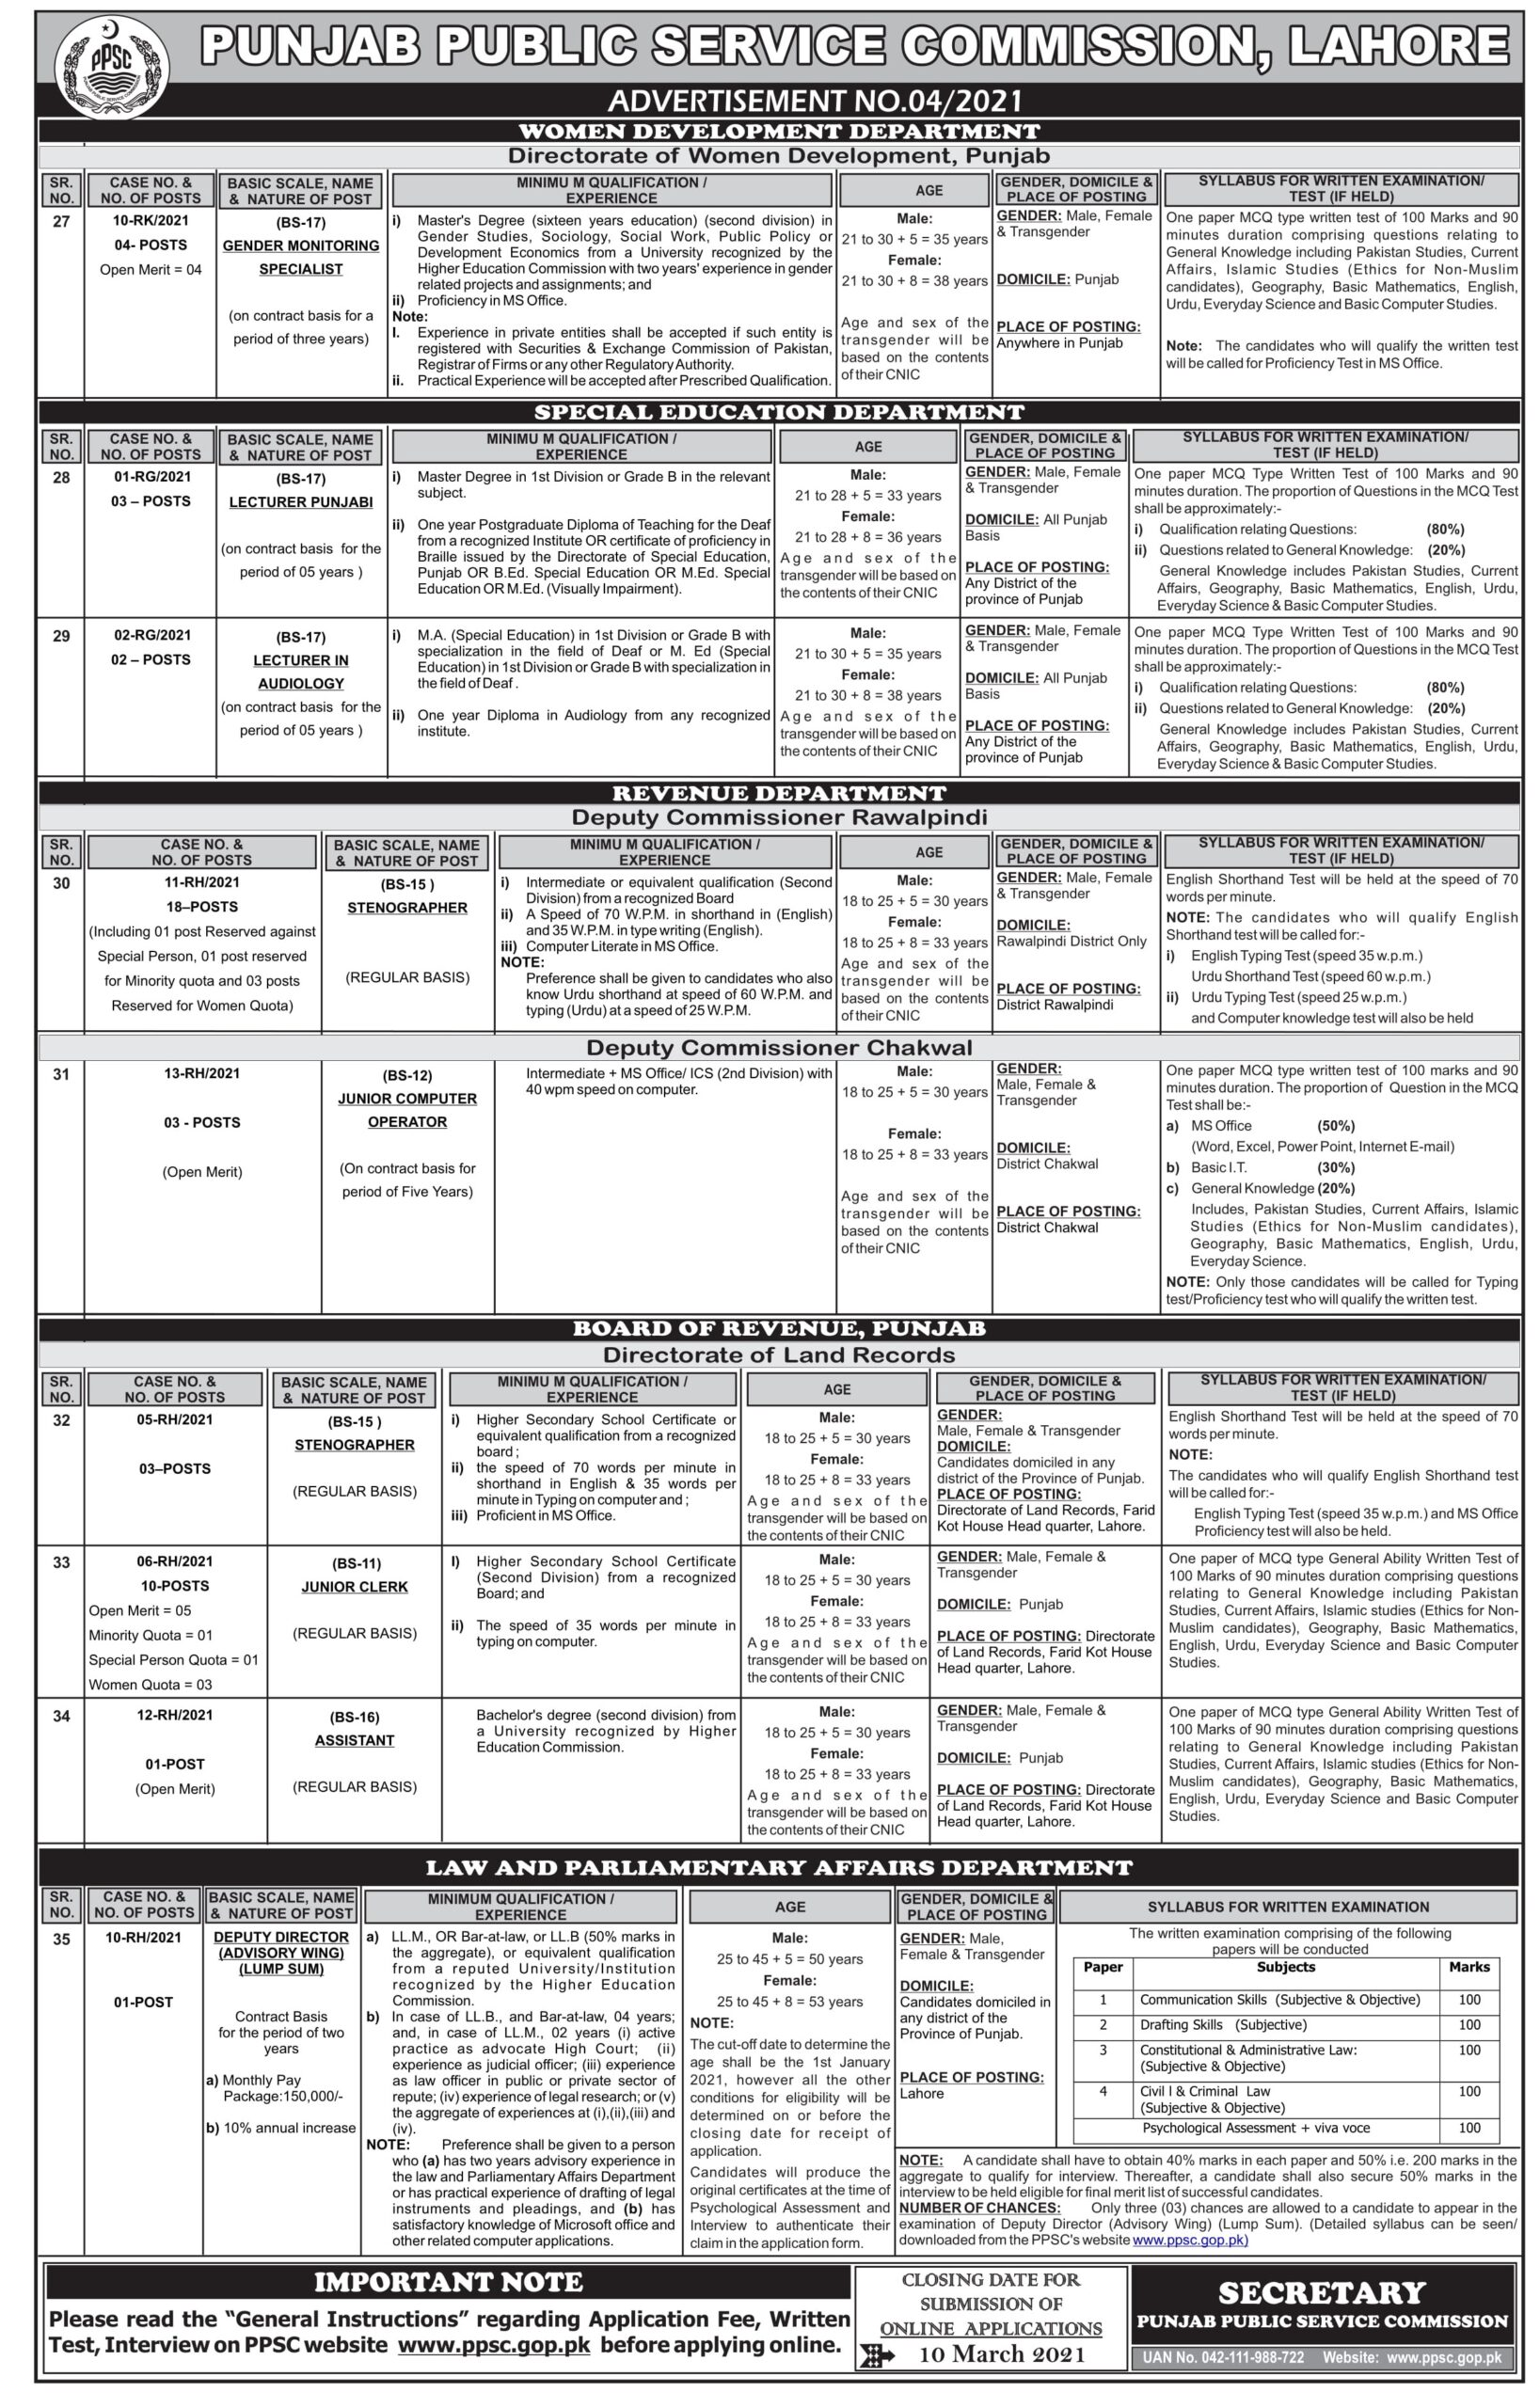 PPSC Jobs 2021 Advertisement No 4